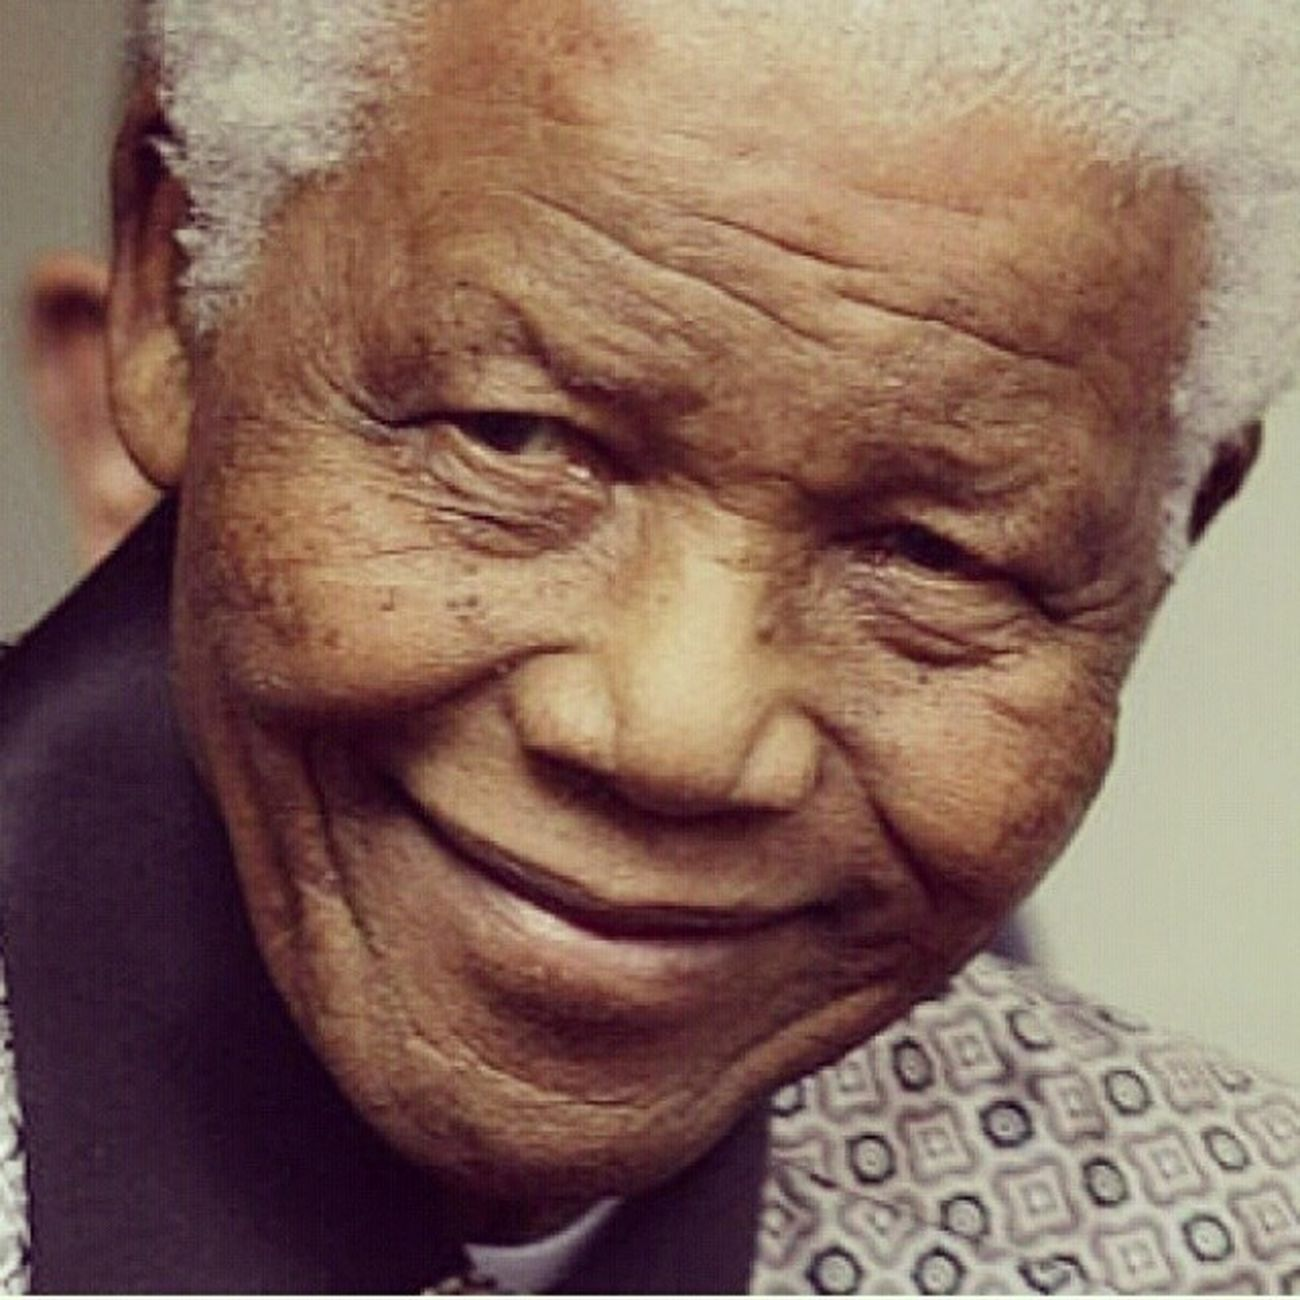 R.I.P Comrade Nelson Rolihlahla Mandela 18th July 1918 - 05th Dec 2013 FromPrisonertoPresidentofSouthAfricatoNoblePeaceIcon